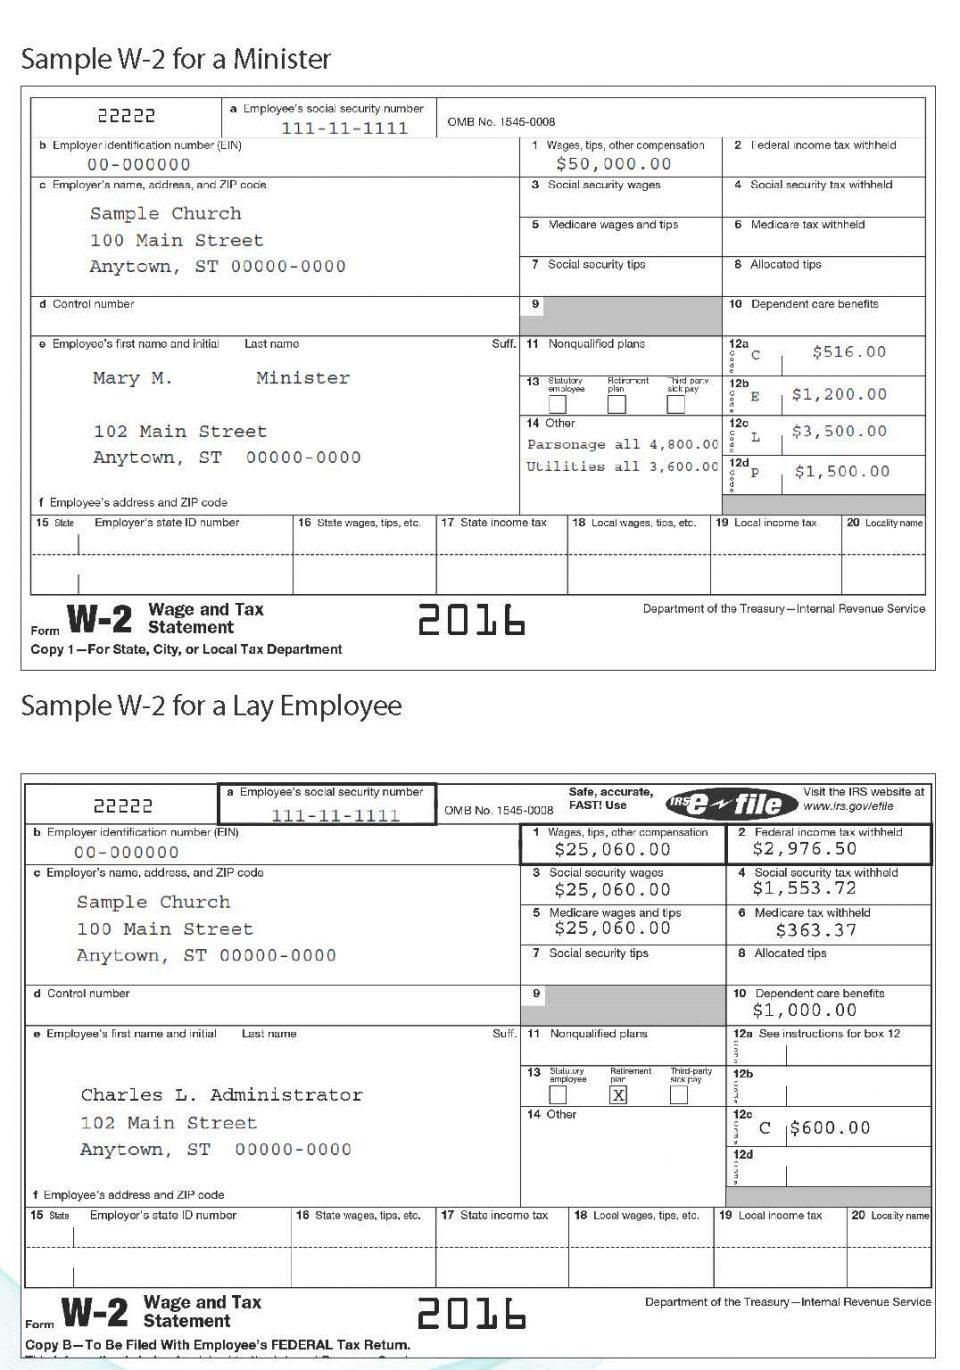 Cms 1500 Forms Staples Universal Network